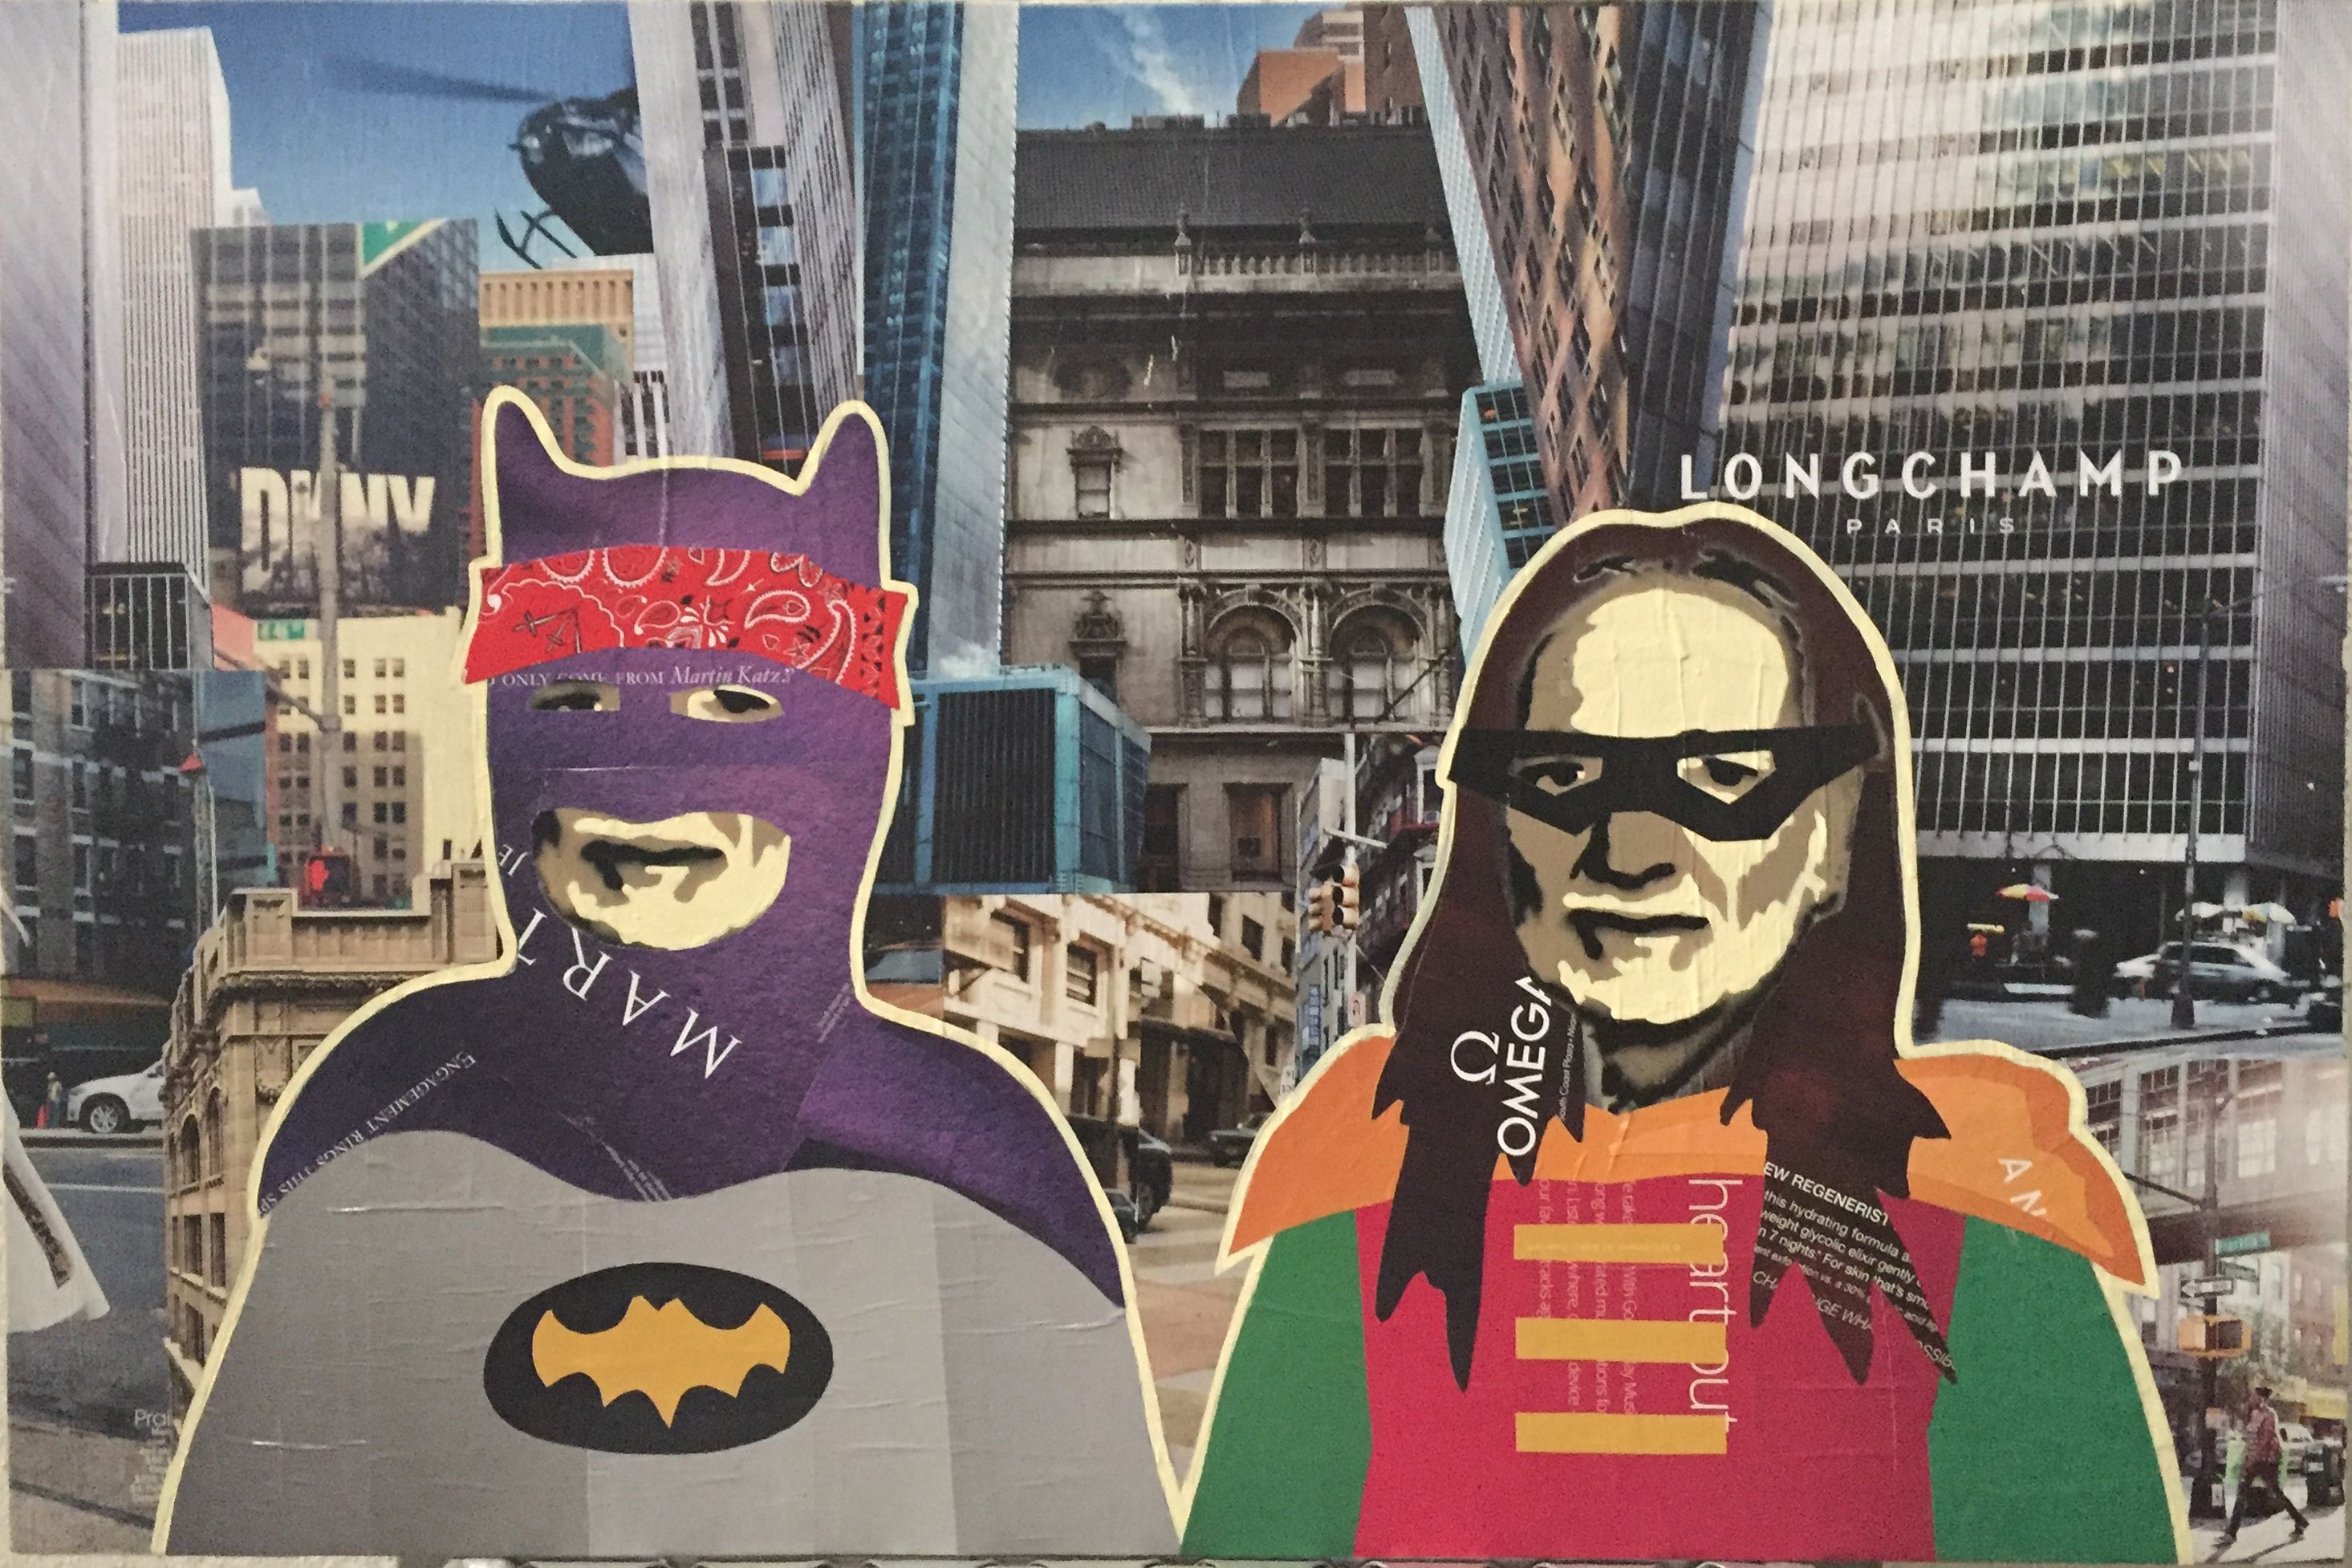 WILLIE AS BATMAN & ROBIN XV mixed media on board 16 x 24 inches 2016 $325  email annegenung@gmail.com or DM to purchase